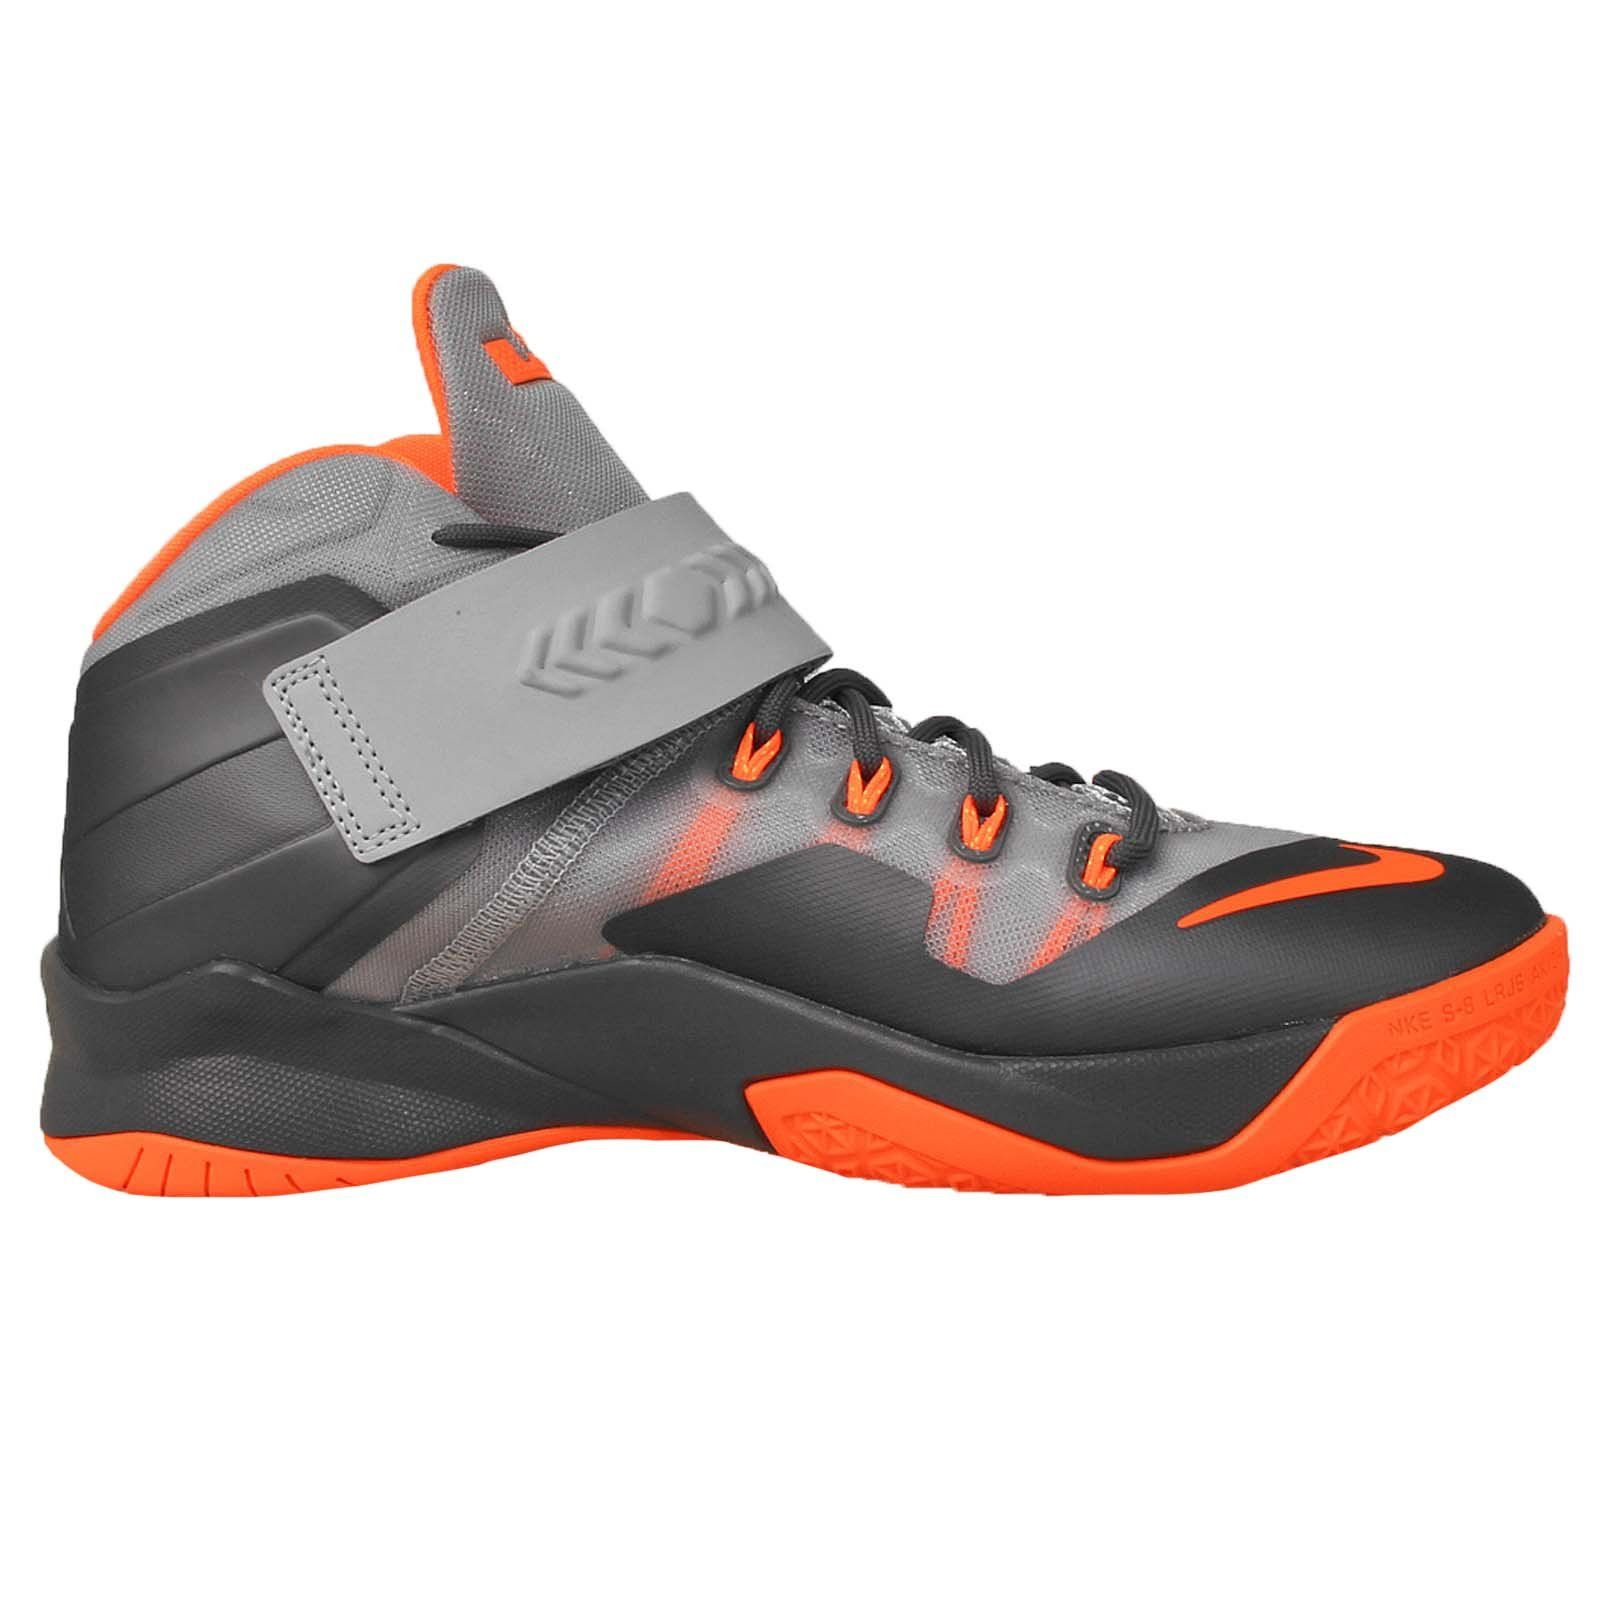 Nike Soldier VIII GS 8 Lebron James Youth Basketball Shoes 653645-010 (4.5Y